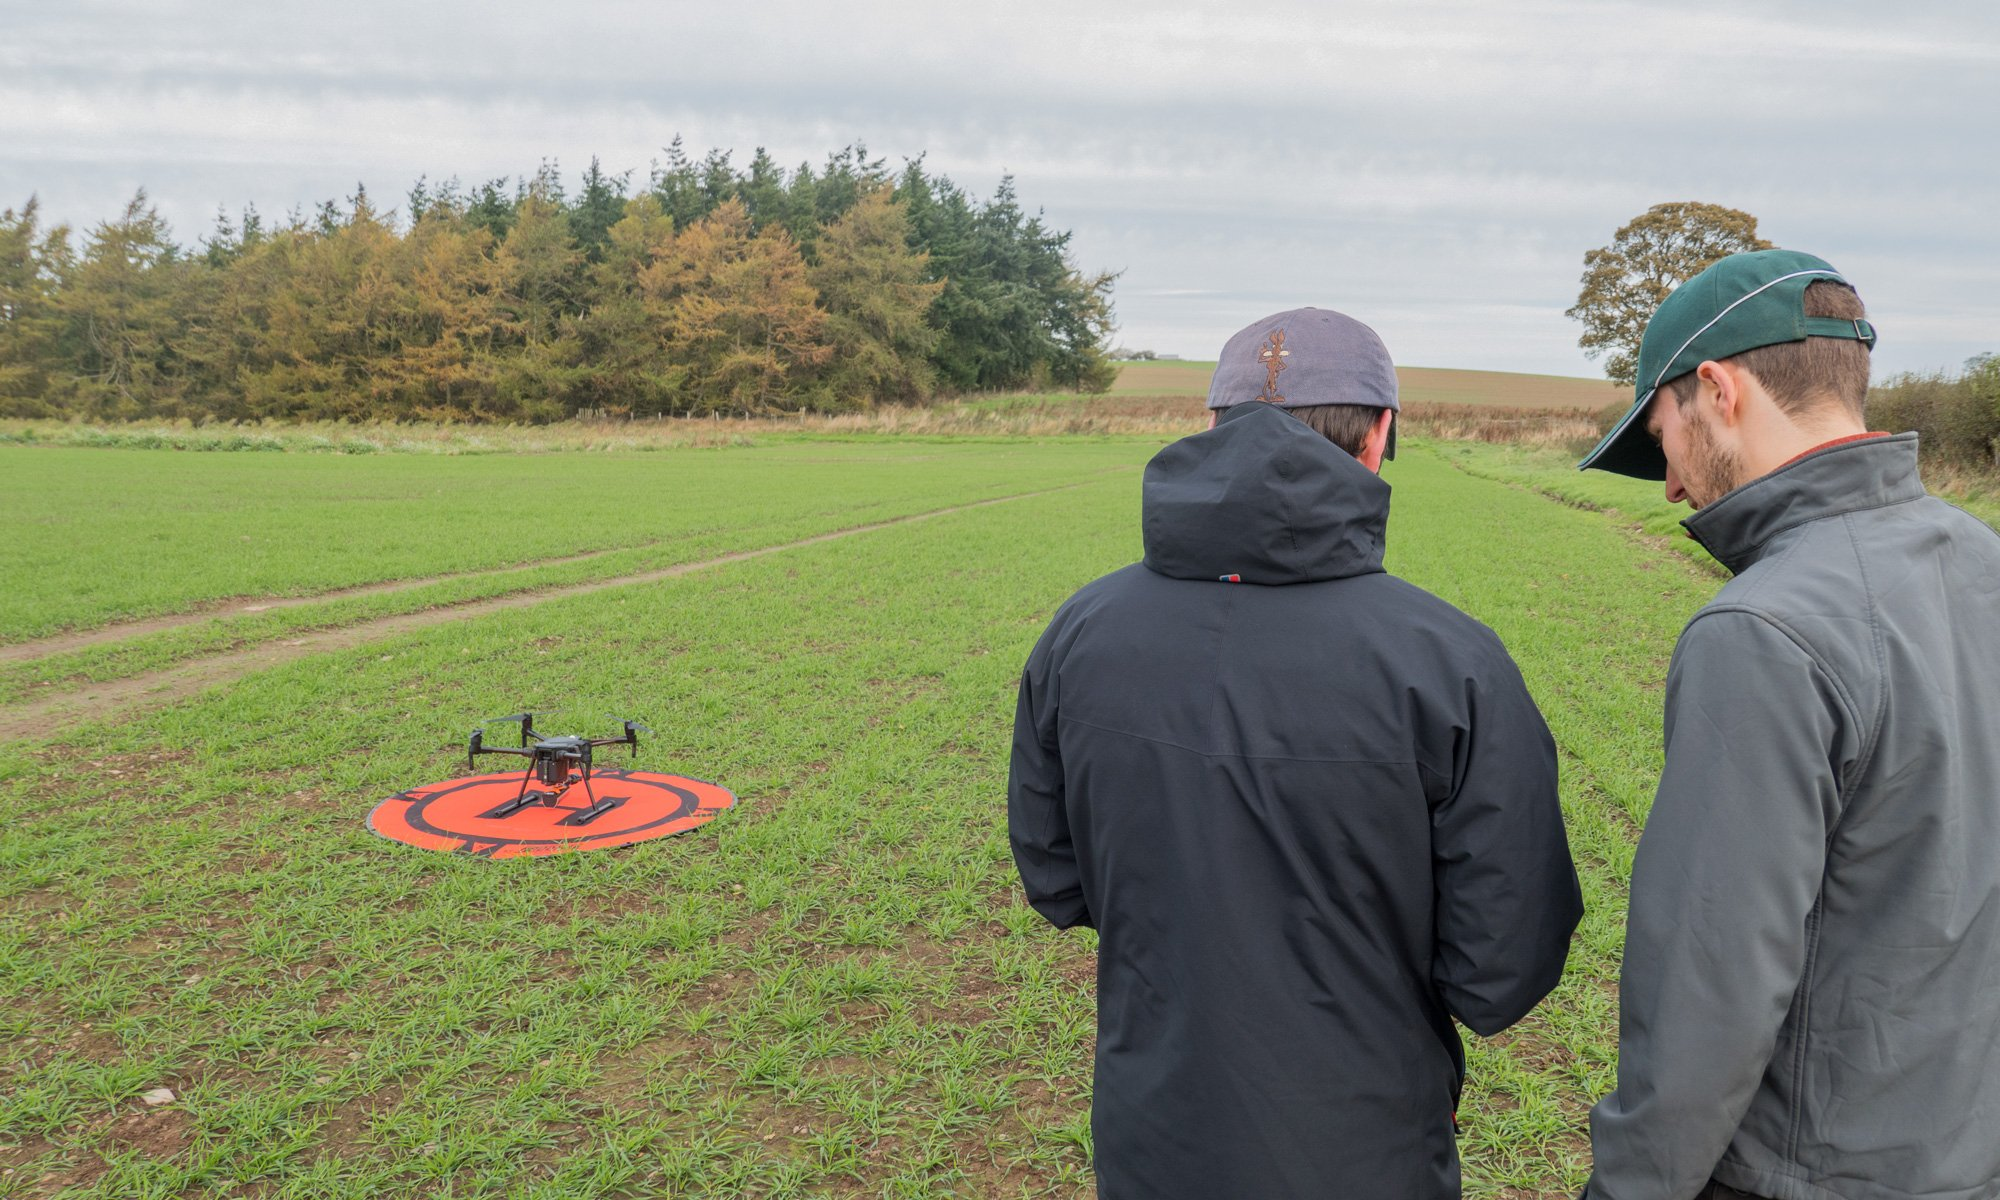 Drone training for farming